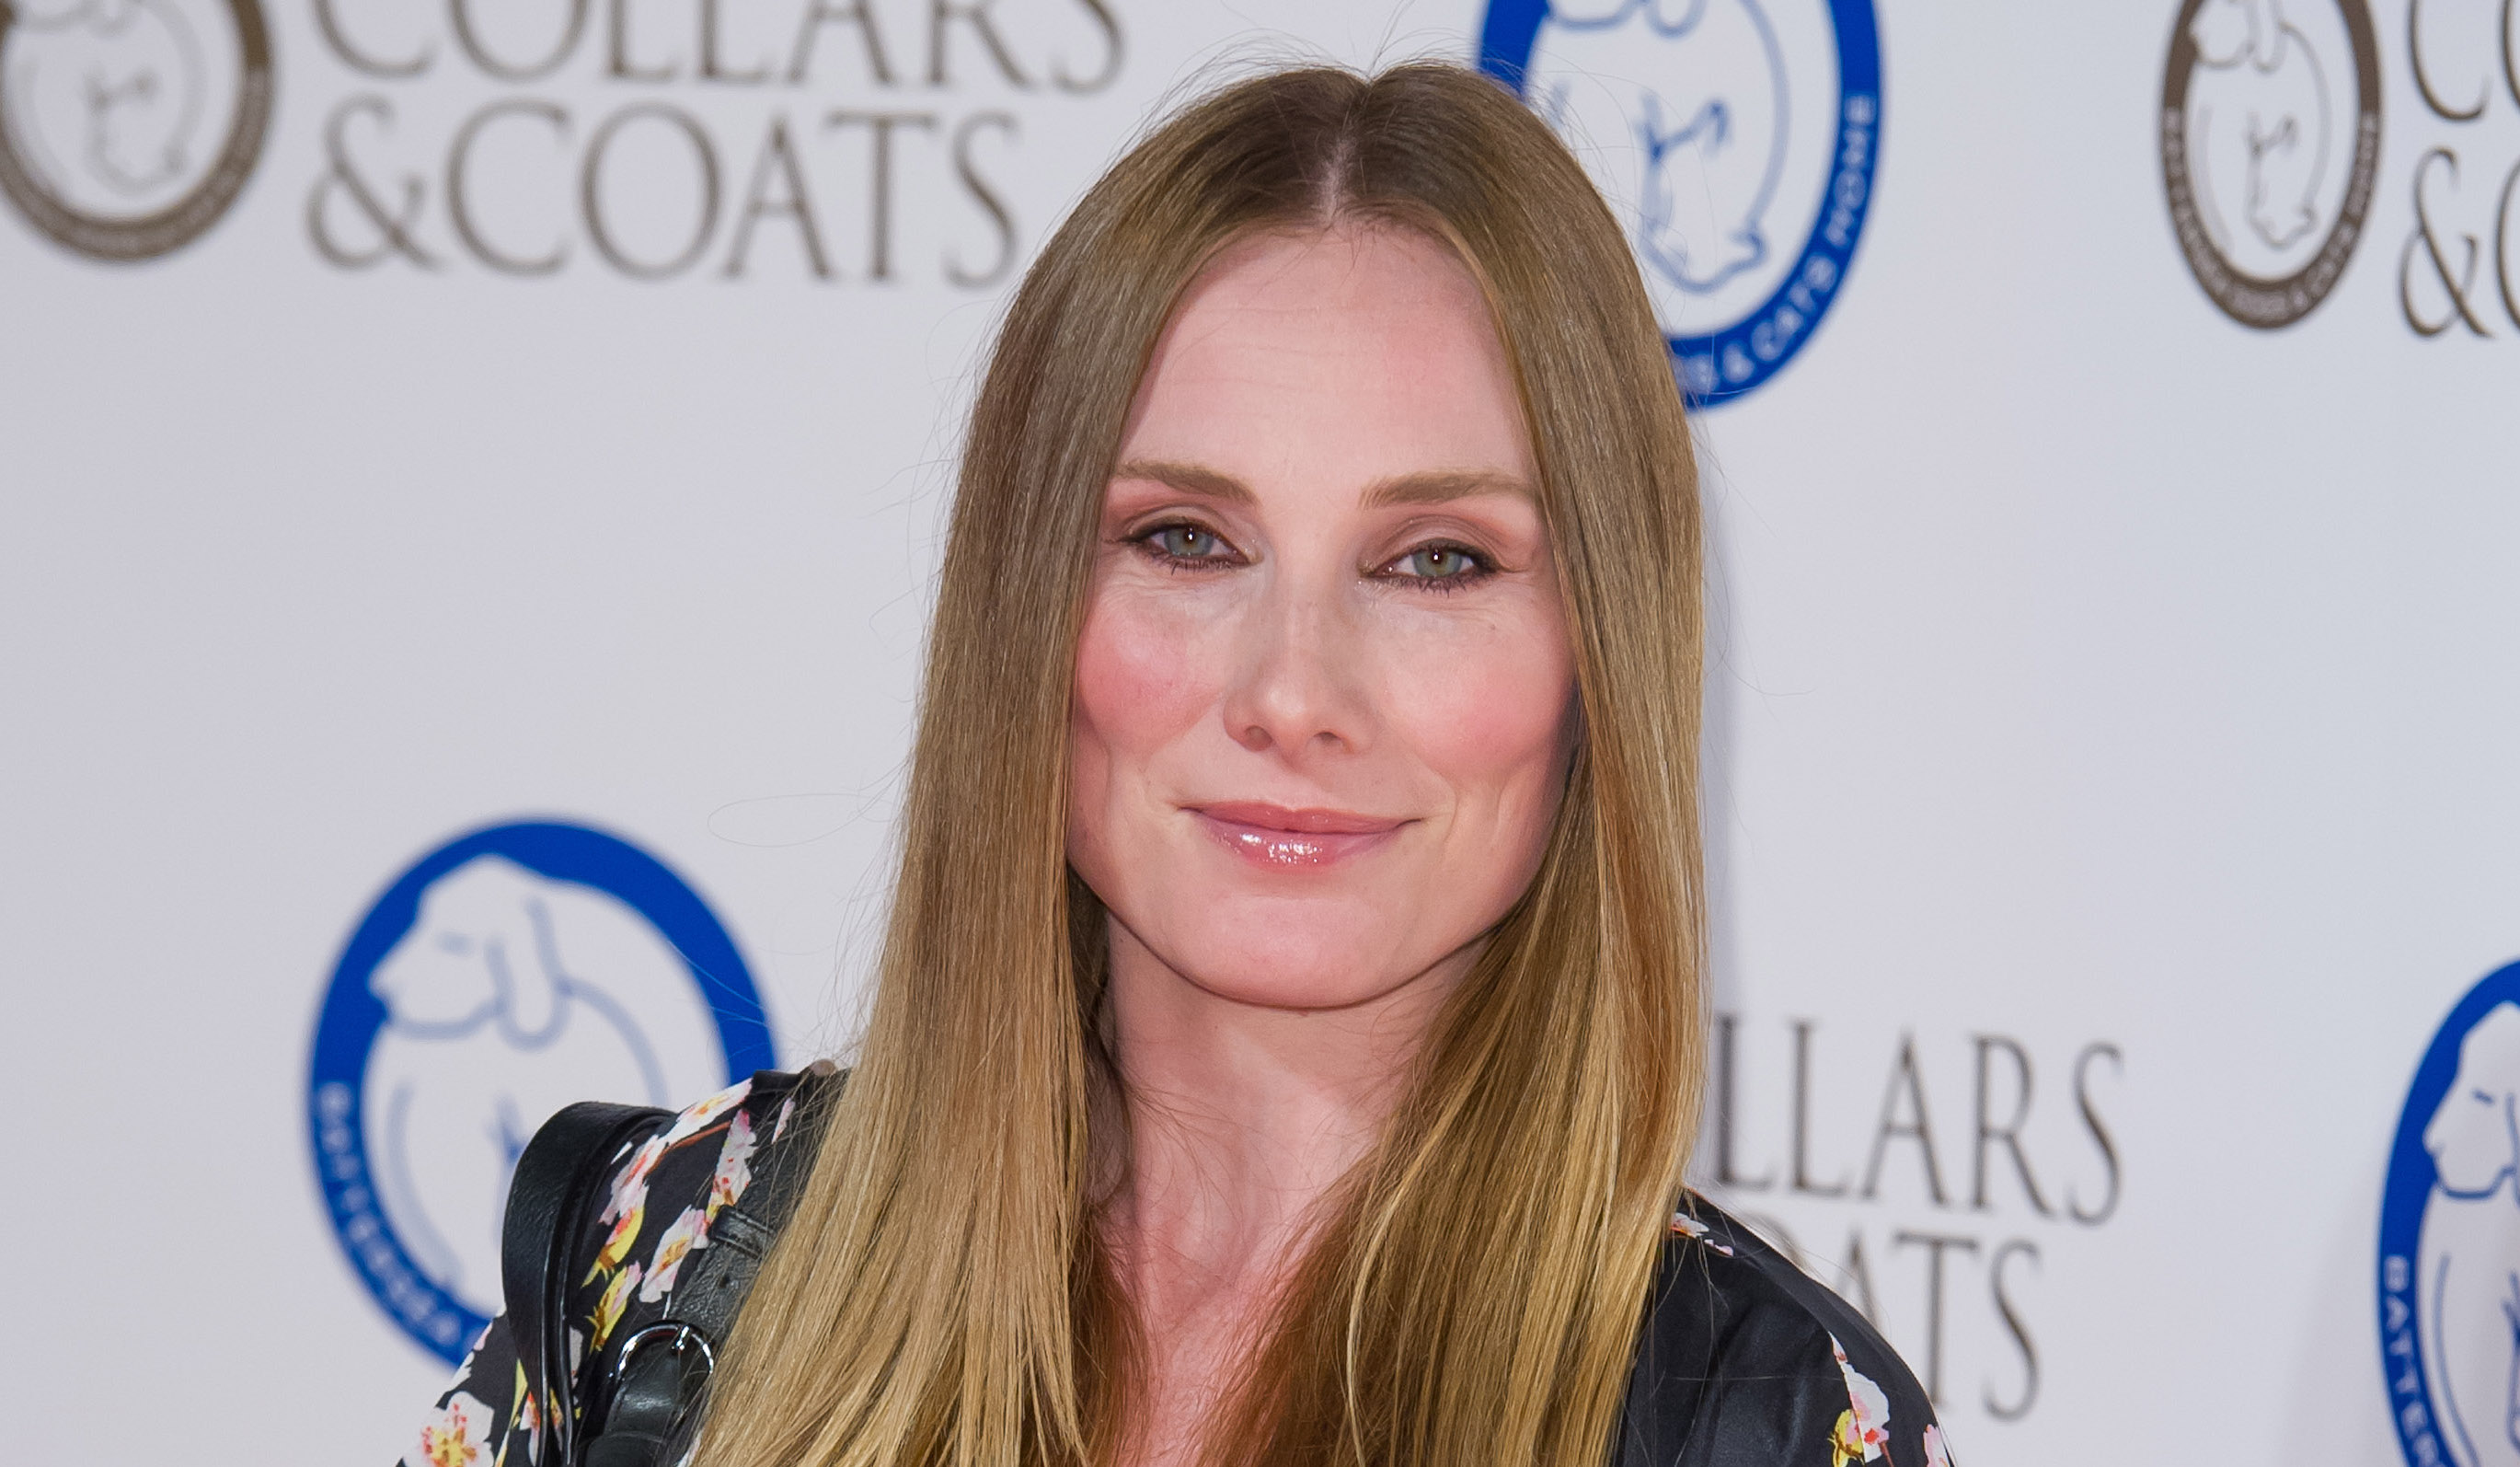 Holby City's Rosie Marcel shows off hair transformation to fans